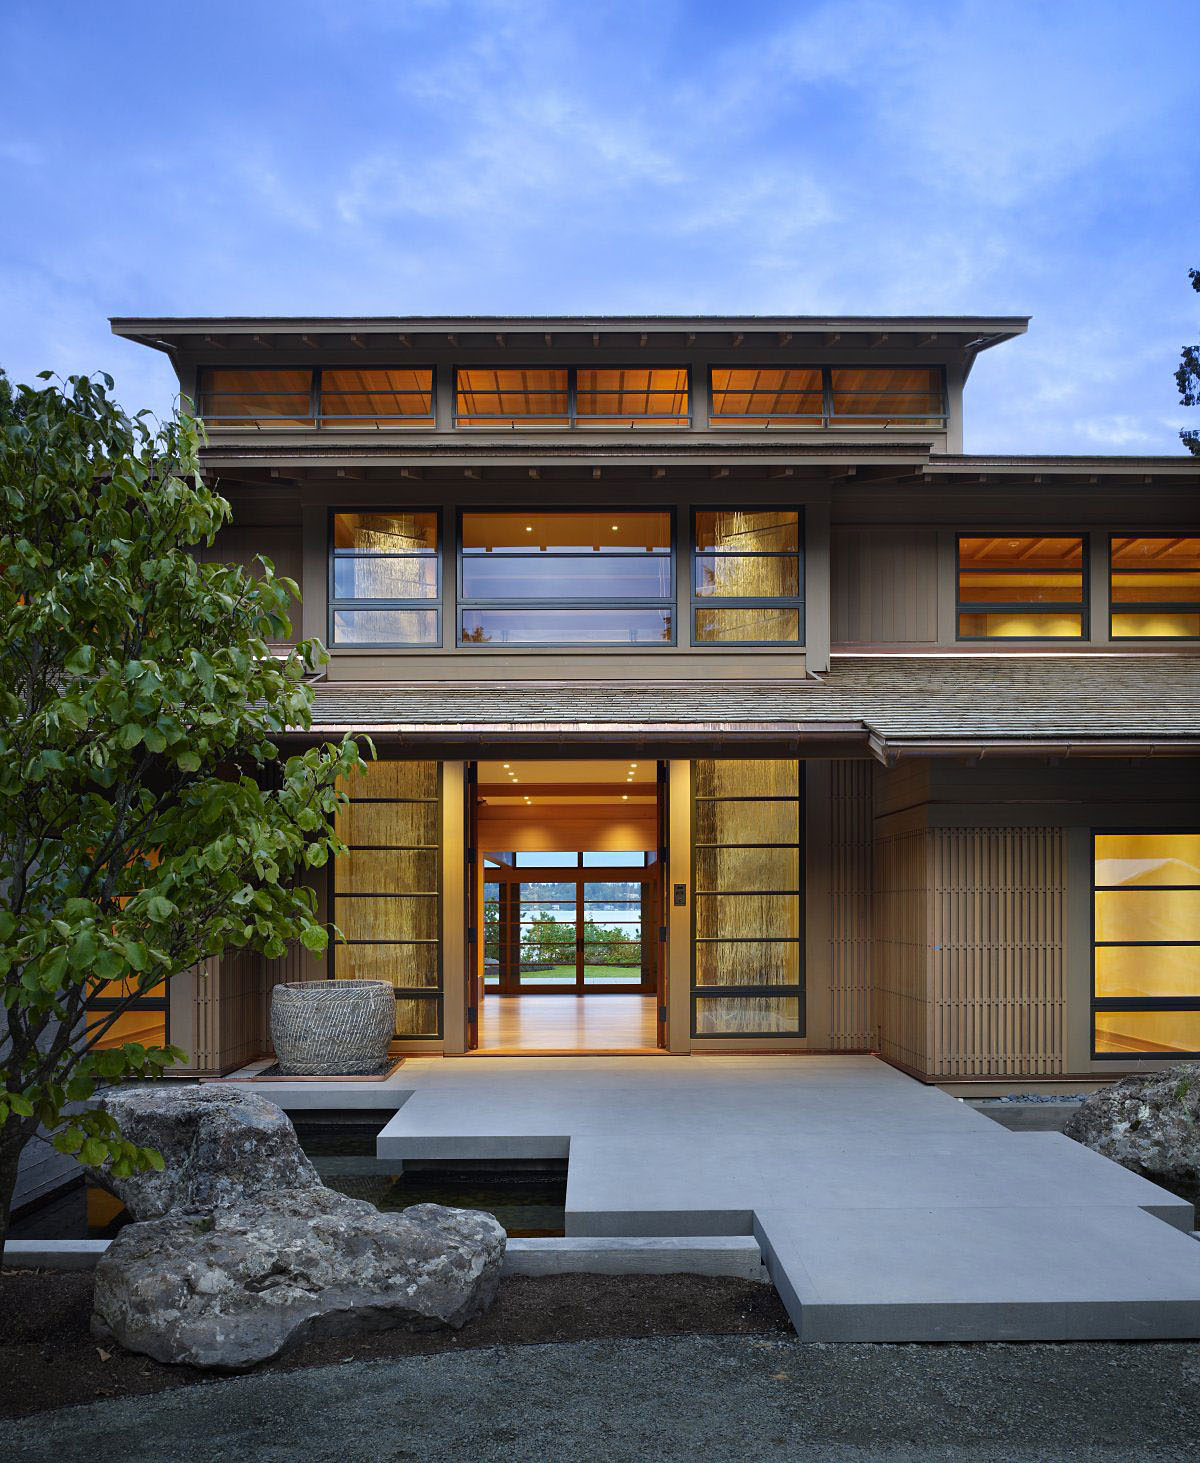 Contemporary house in seattle with japanese influence for Contemporary house designs